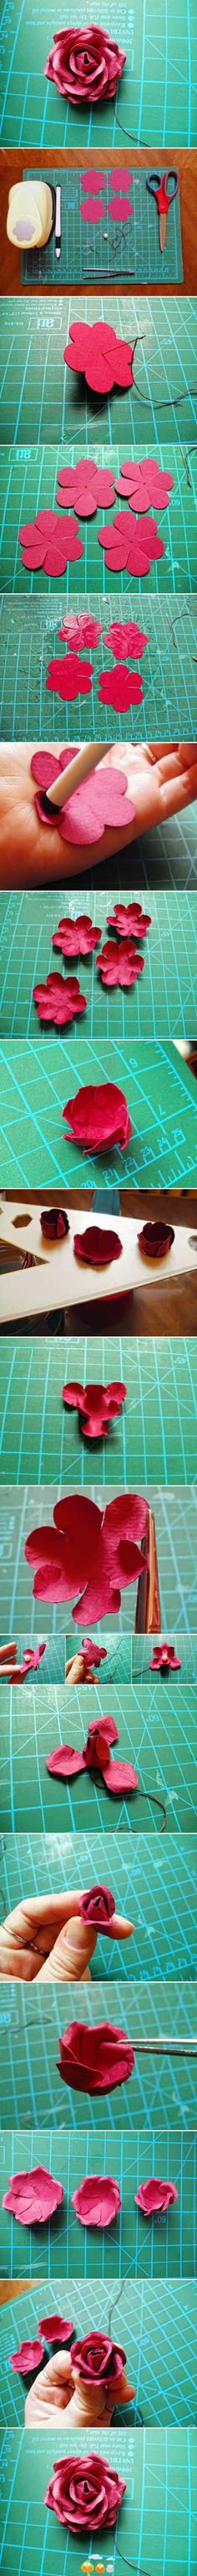 Inspirational Monday - Do it yourself (diy) Flower series - DIY paper rose flower